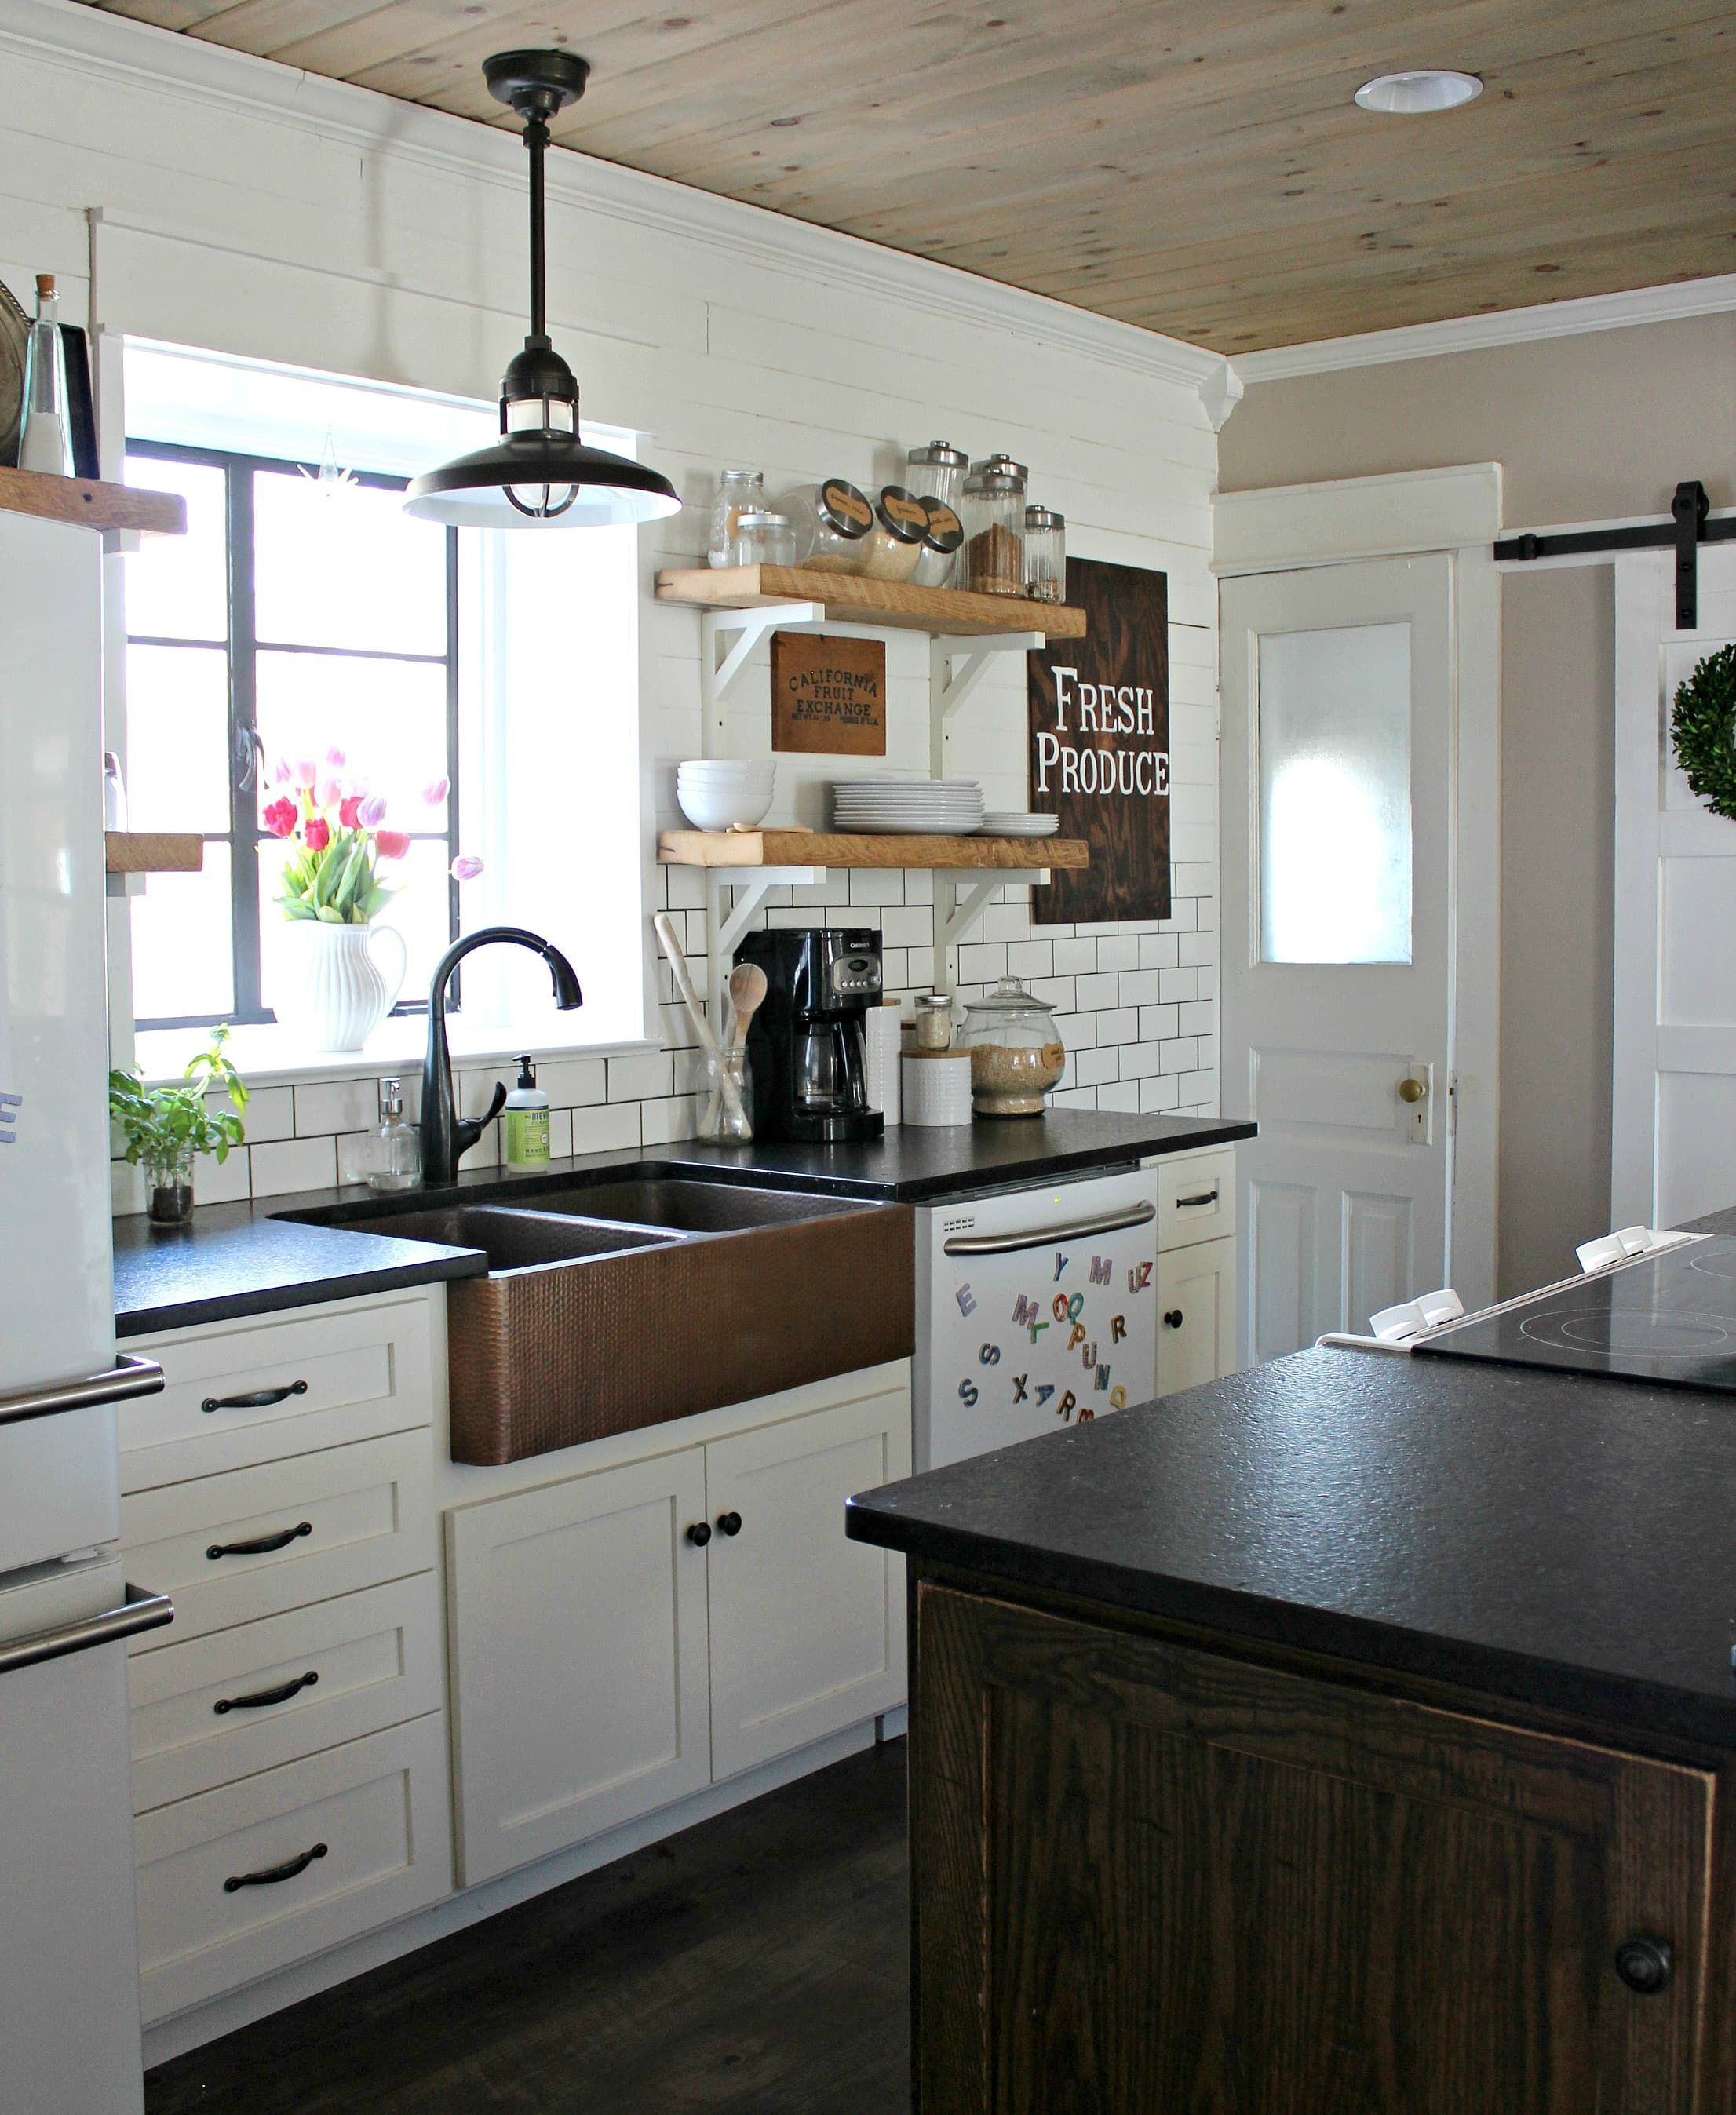 Before After A Dated Kitchen Gets A Delightful Farmhouse Style Look Farmhouse Kitchen Decor Home Decor Kitchen Kitchen Inspirations